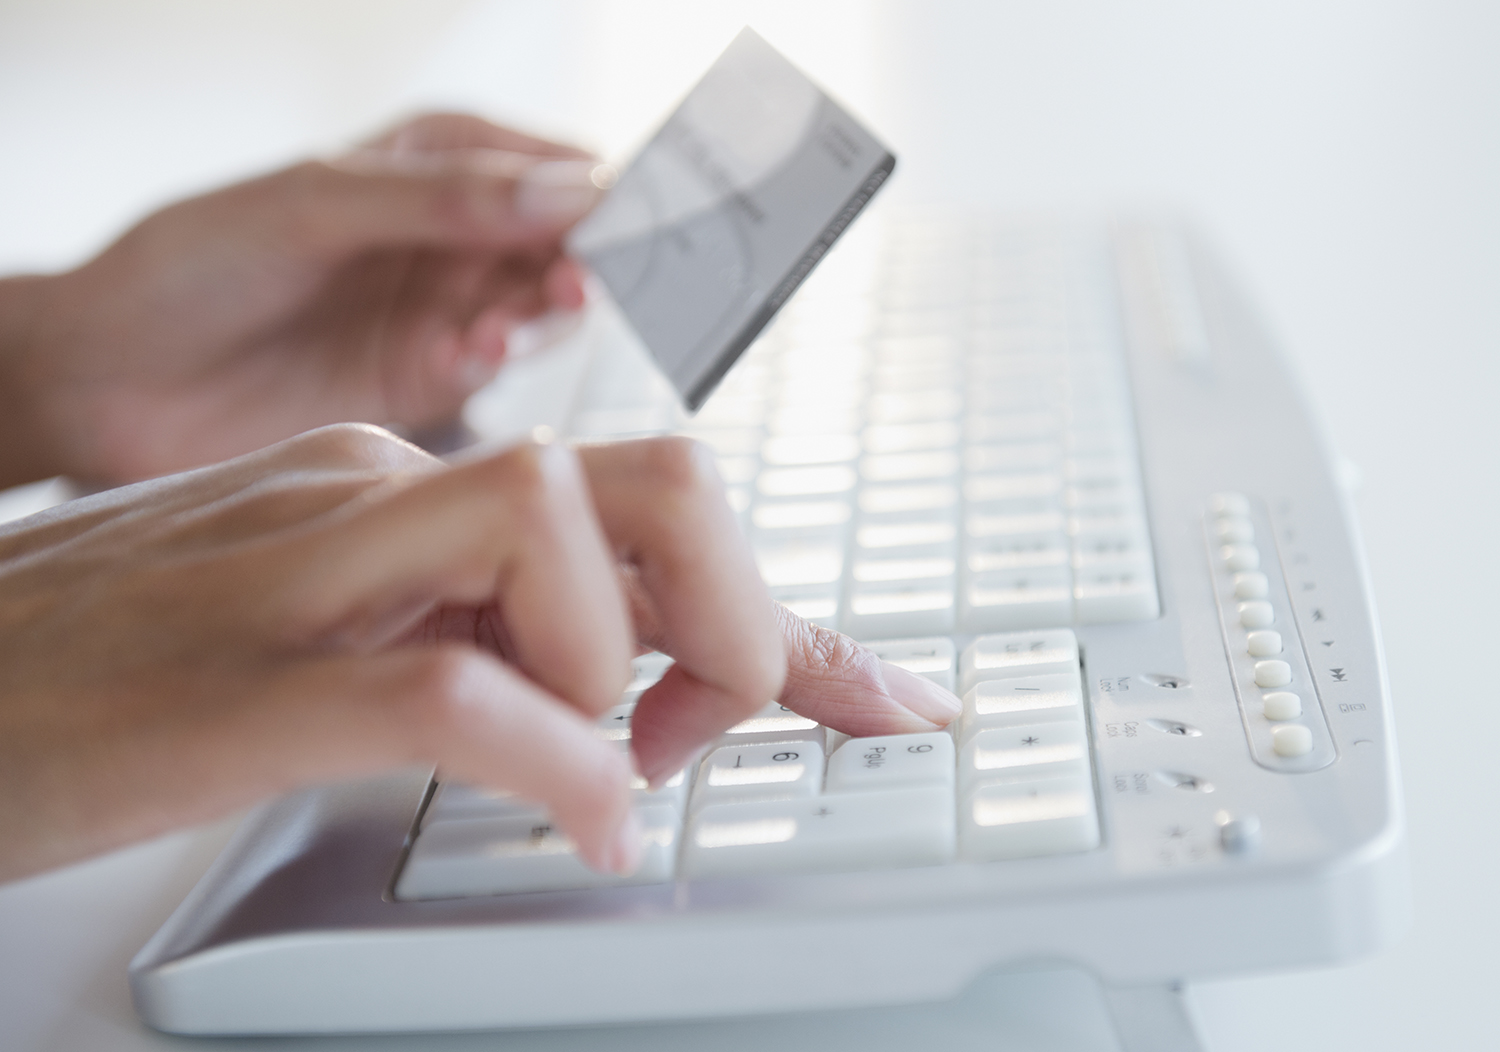 Hands holding credit card while typing on computer keyboard